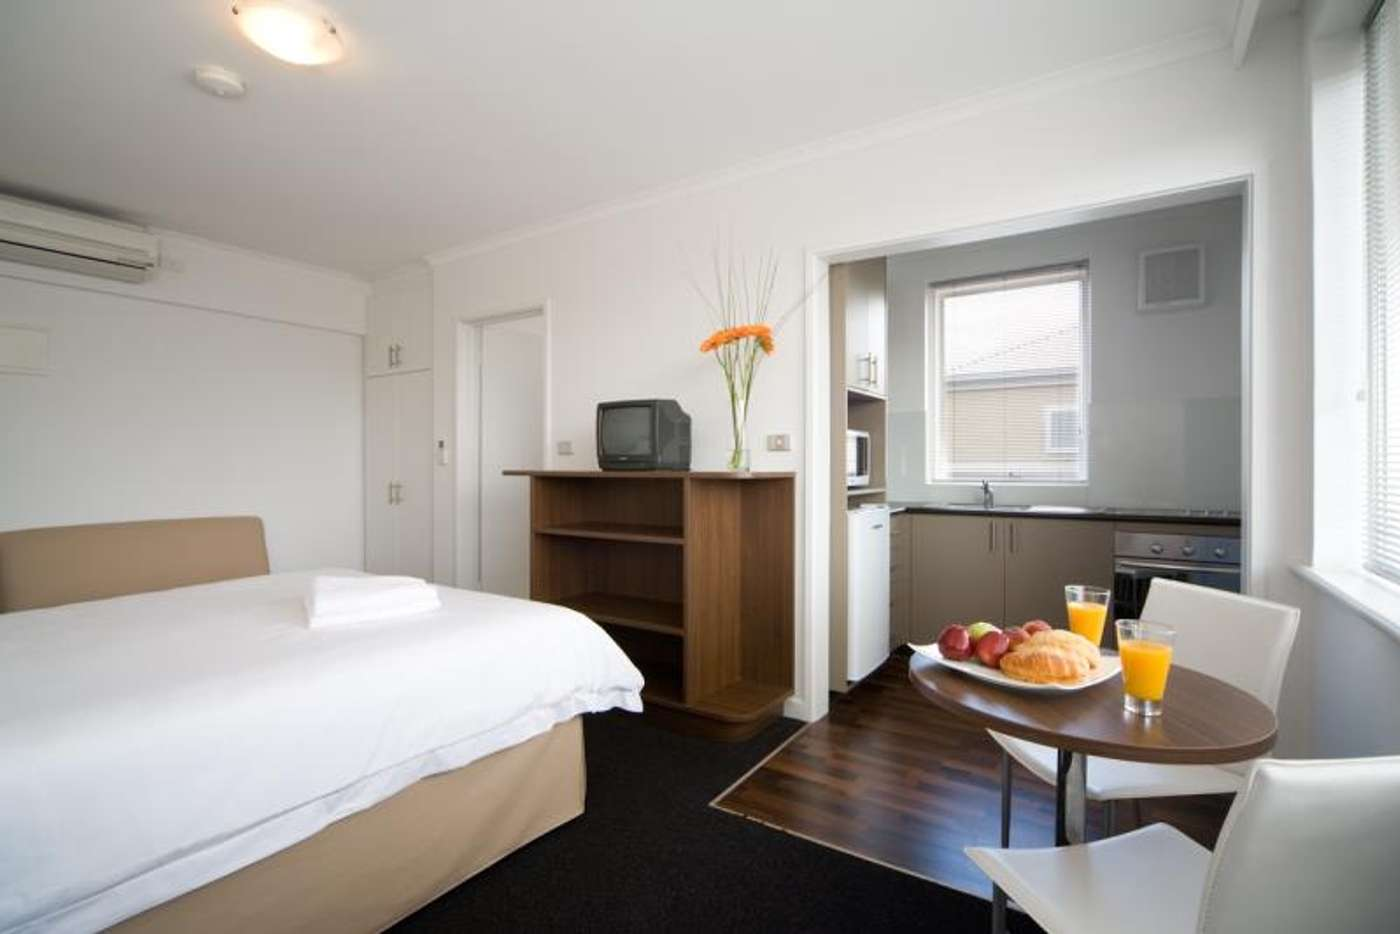 Main view of Homely apartment listing, 9/36 Blessington Street, St Kilda VIC 3182